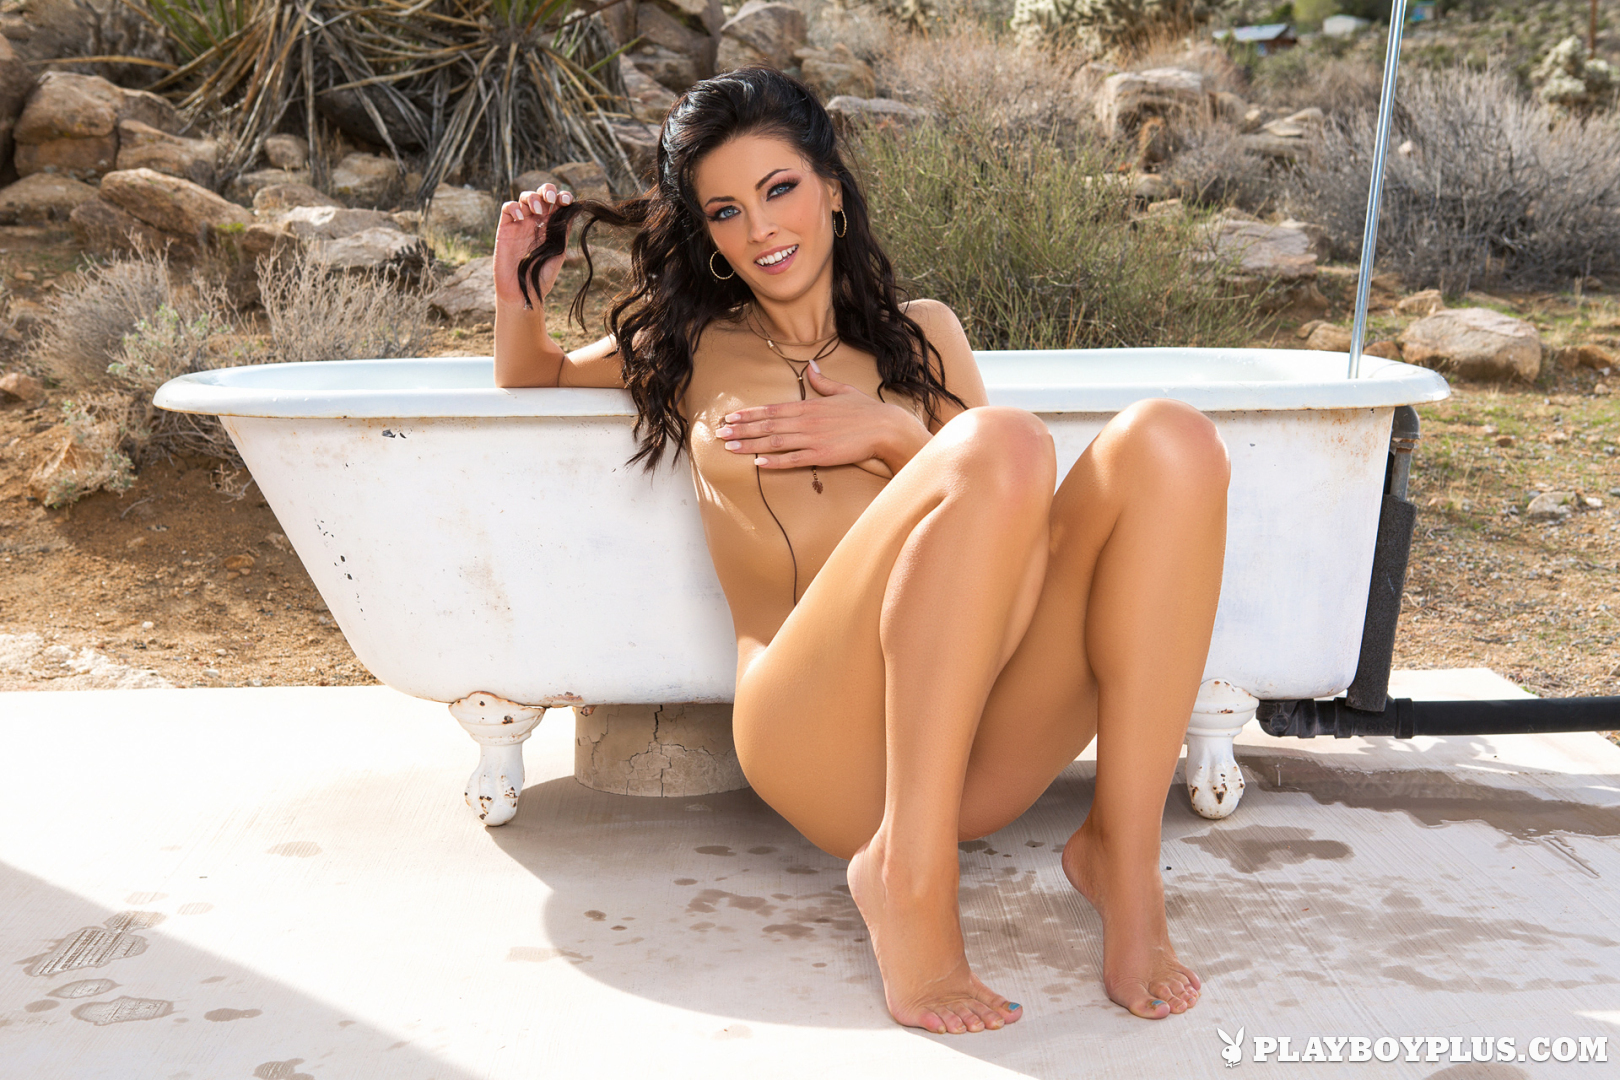 Playboy Cybergirl - Darah Kay takes a bath outside